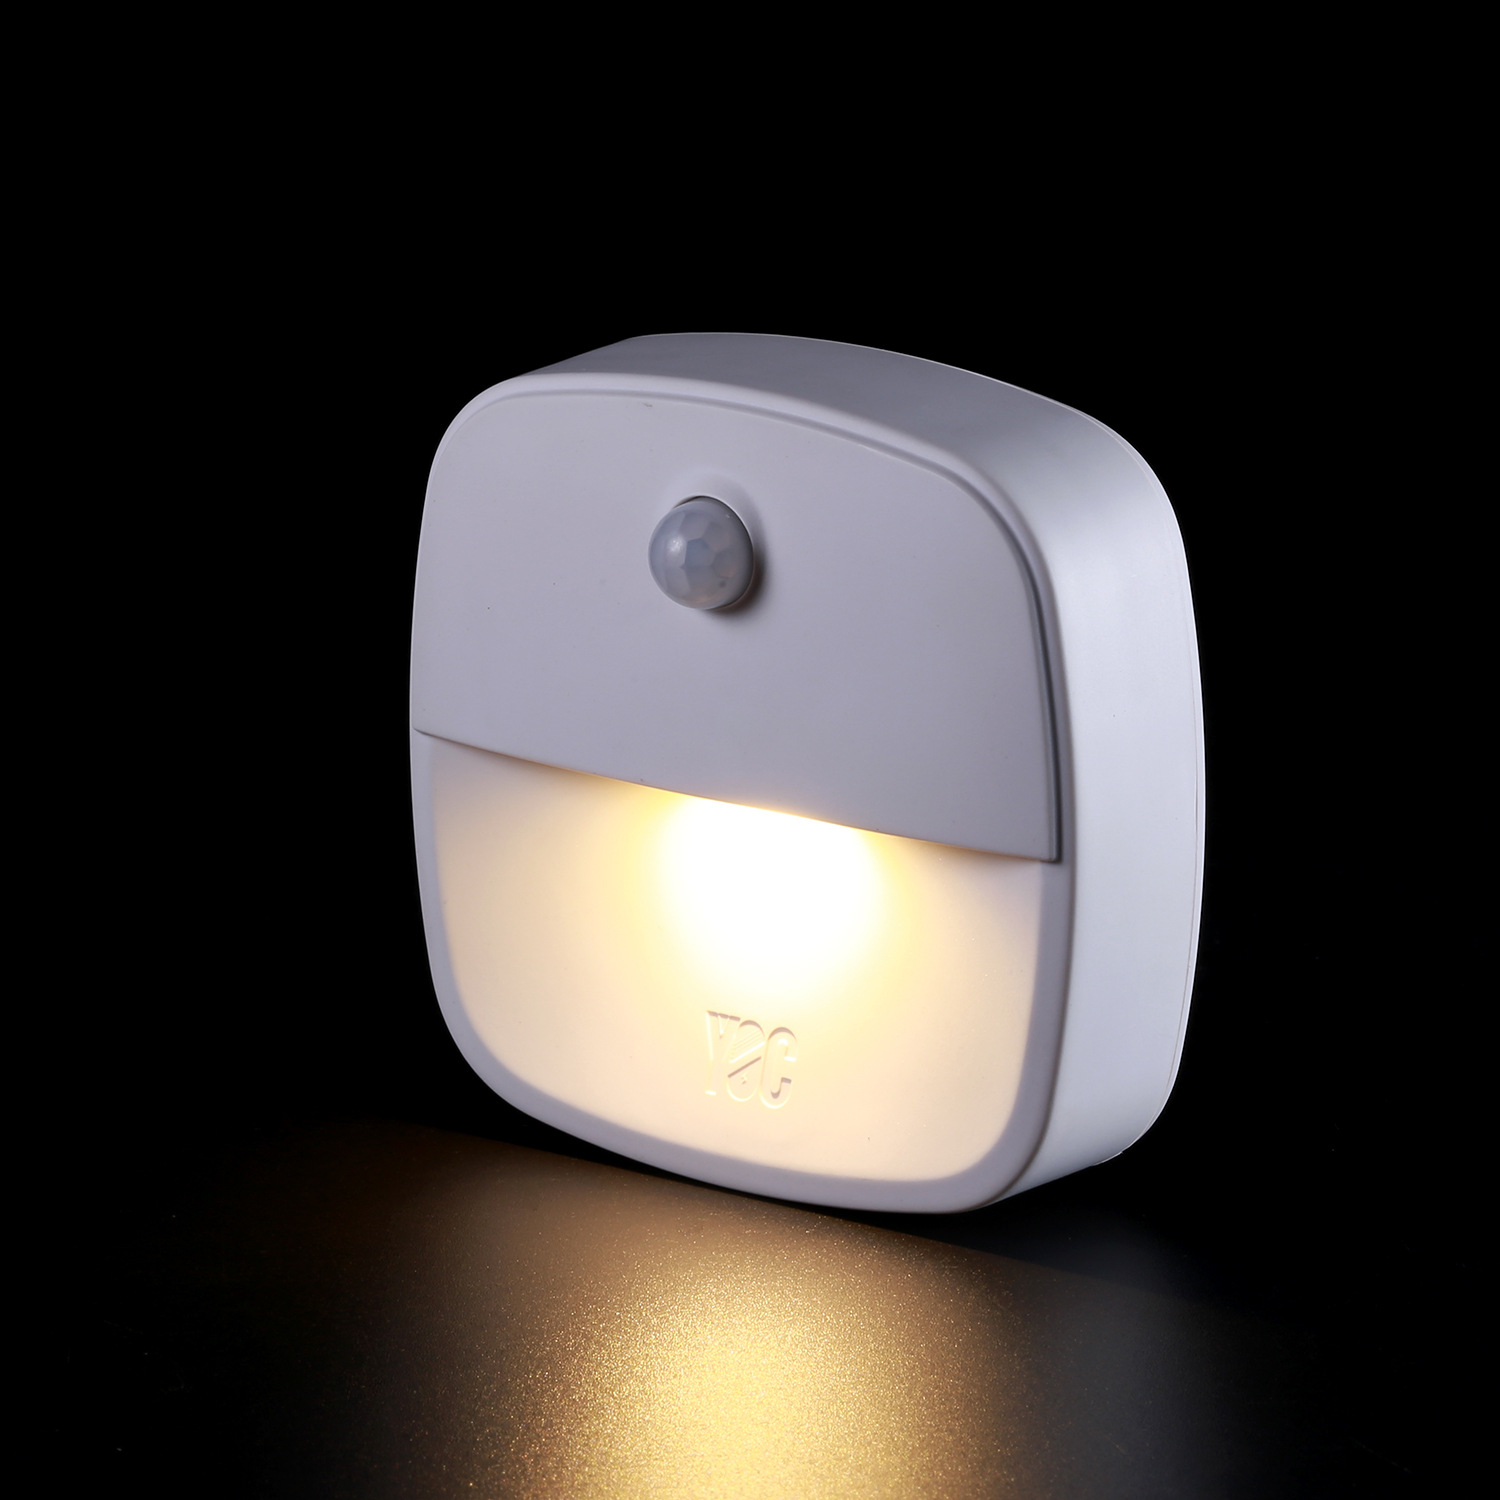 Us 6 78 31 Off Motion Sensor Led Night Light Bedroom Closet Kitchen Hallway Energy Efficient Cabinet Light Battery Operated Body Induction Lamp In